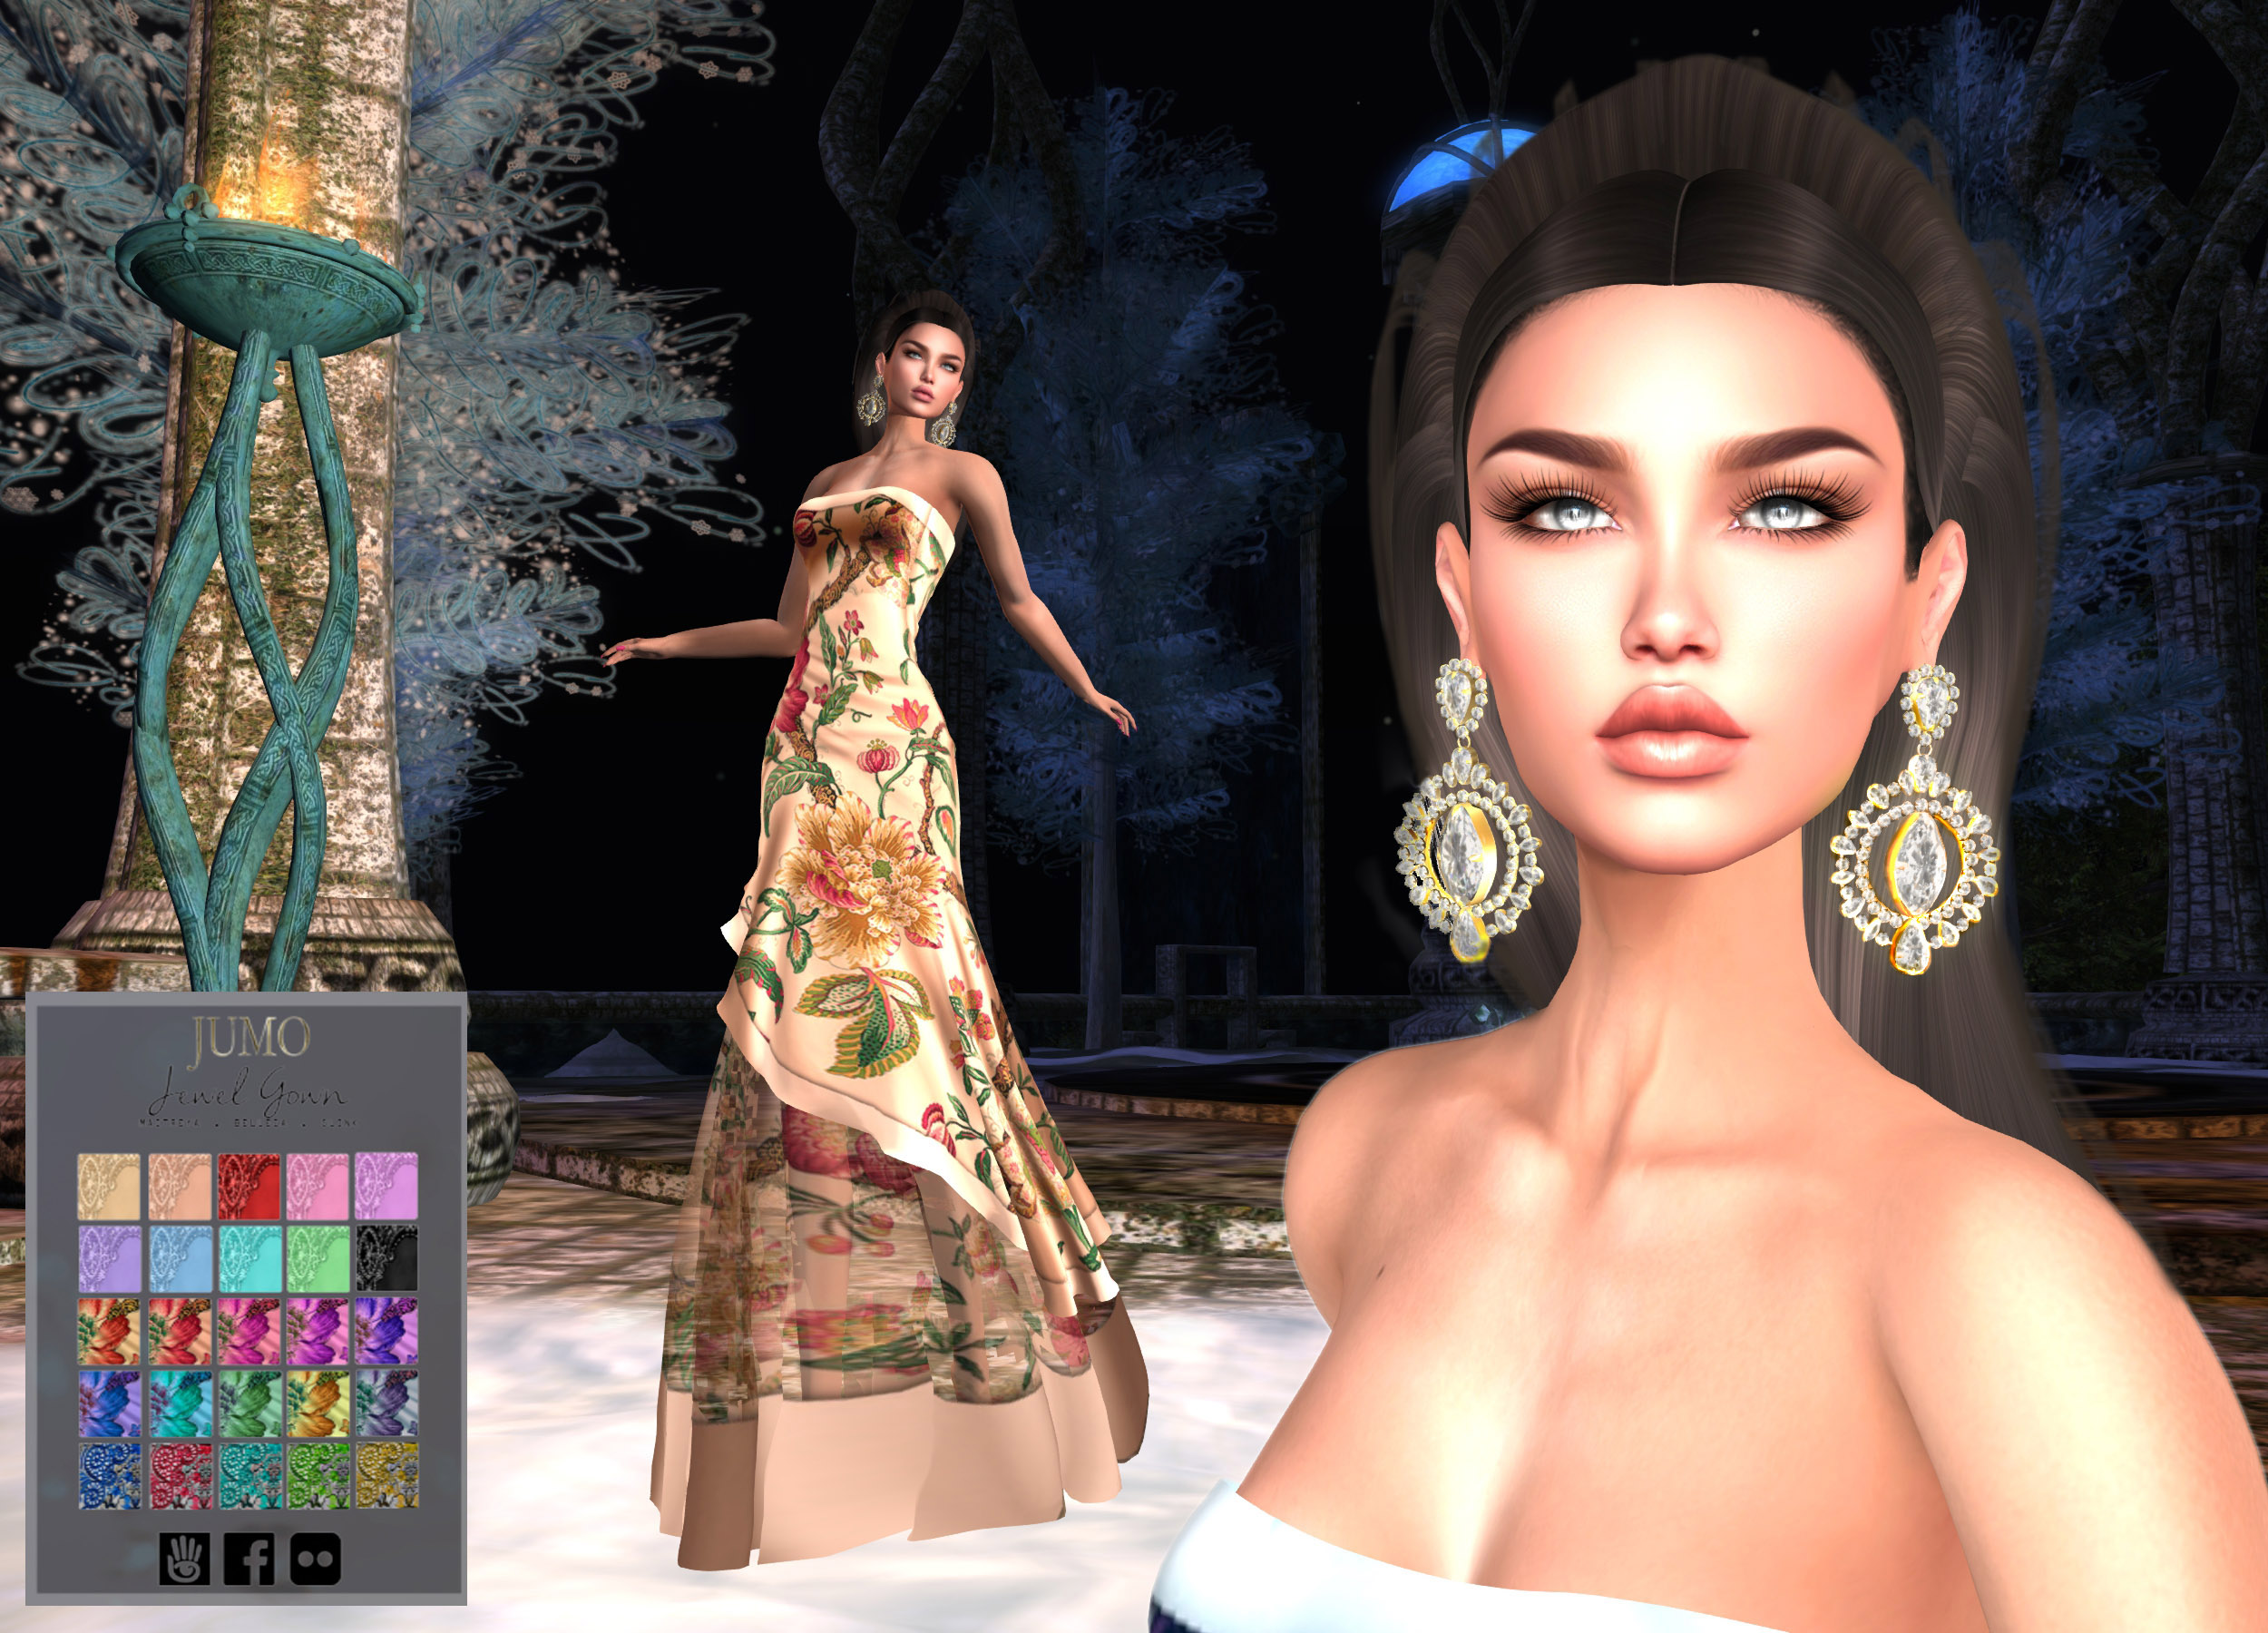 LuceMia - JUMO for Swank Event